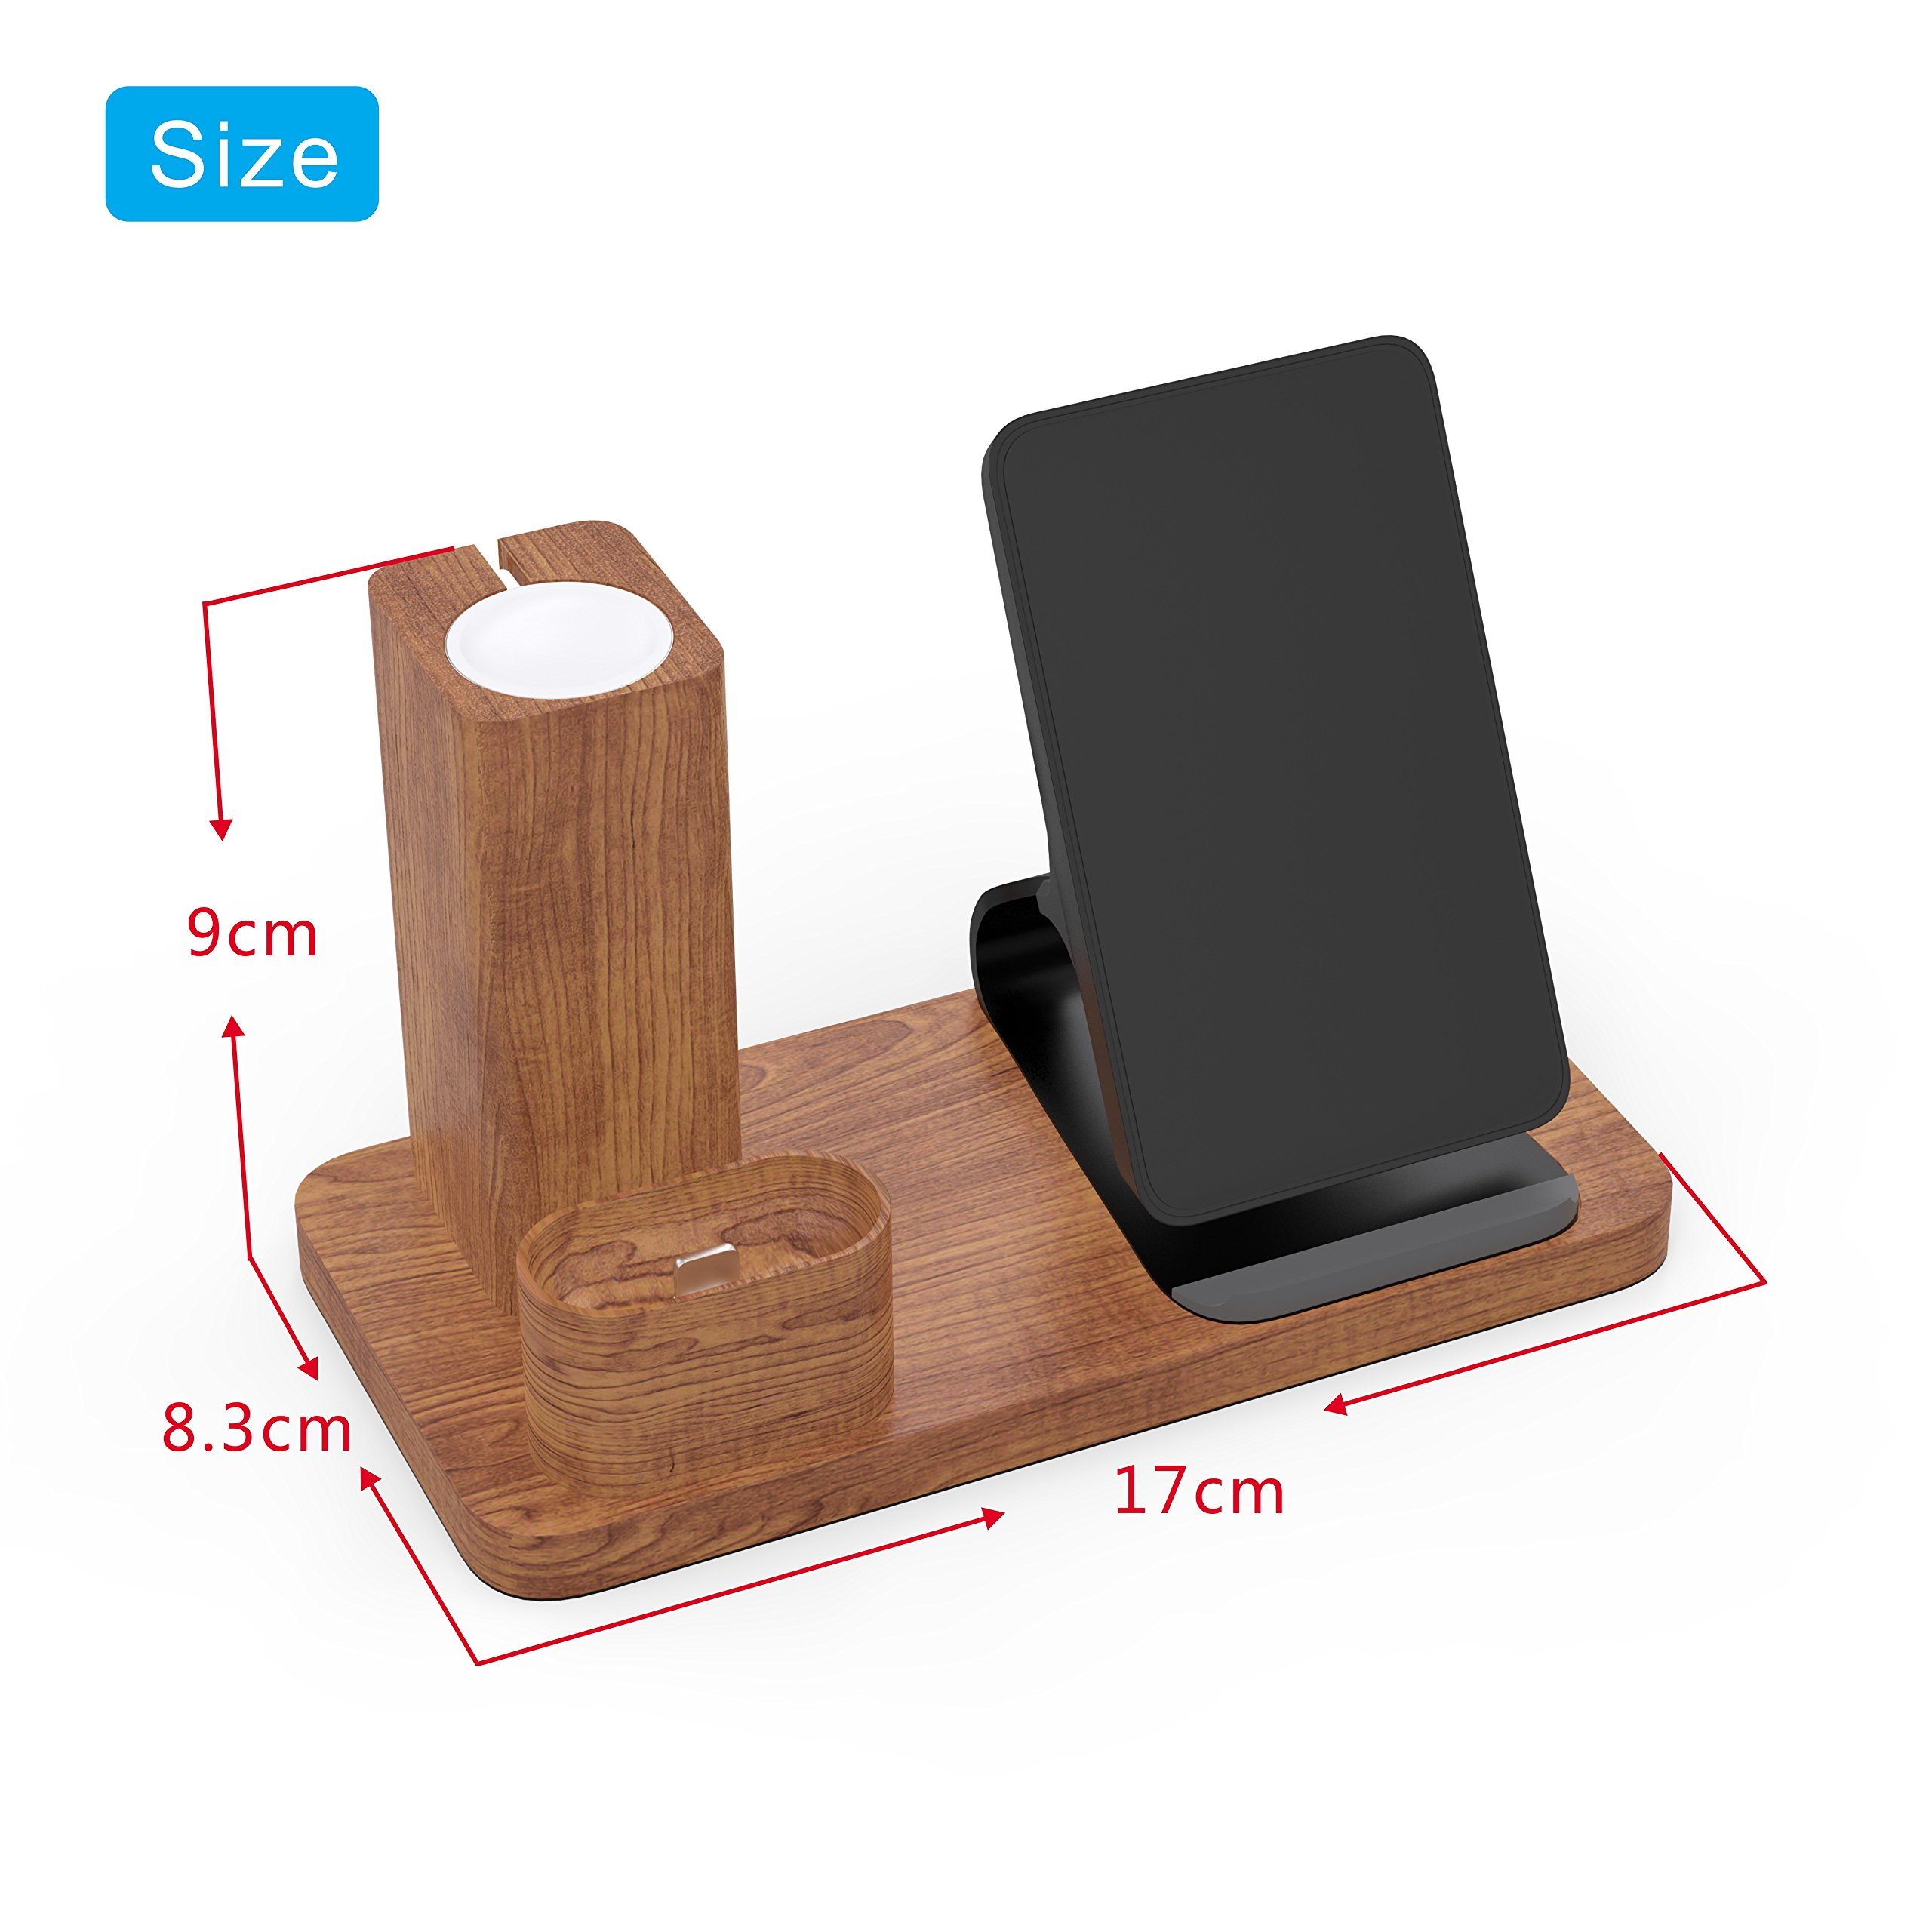 Wireless Charger Stand Apple Watch Airpods Charging Station, OLVOO 3 in 1 Wood Charging Docks for AirPods/Apple Watch Series 3/2/1 iPhone X/8/8 Plus Samsung Note 8/S9/S9 Plus by OLVOO (Image #7)